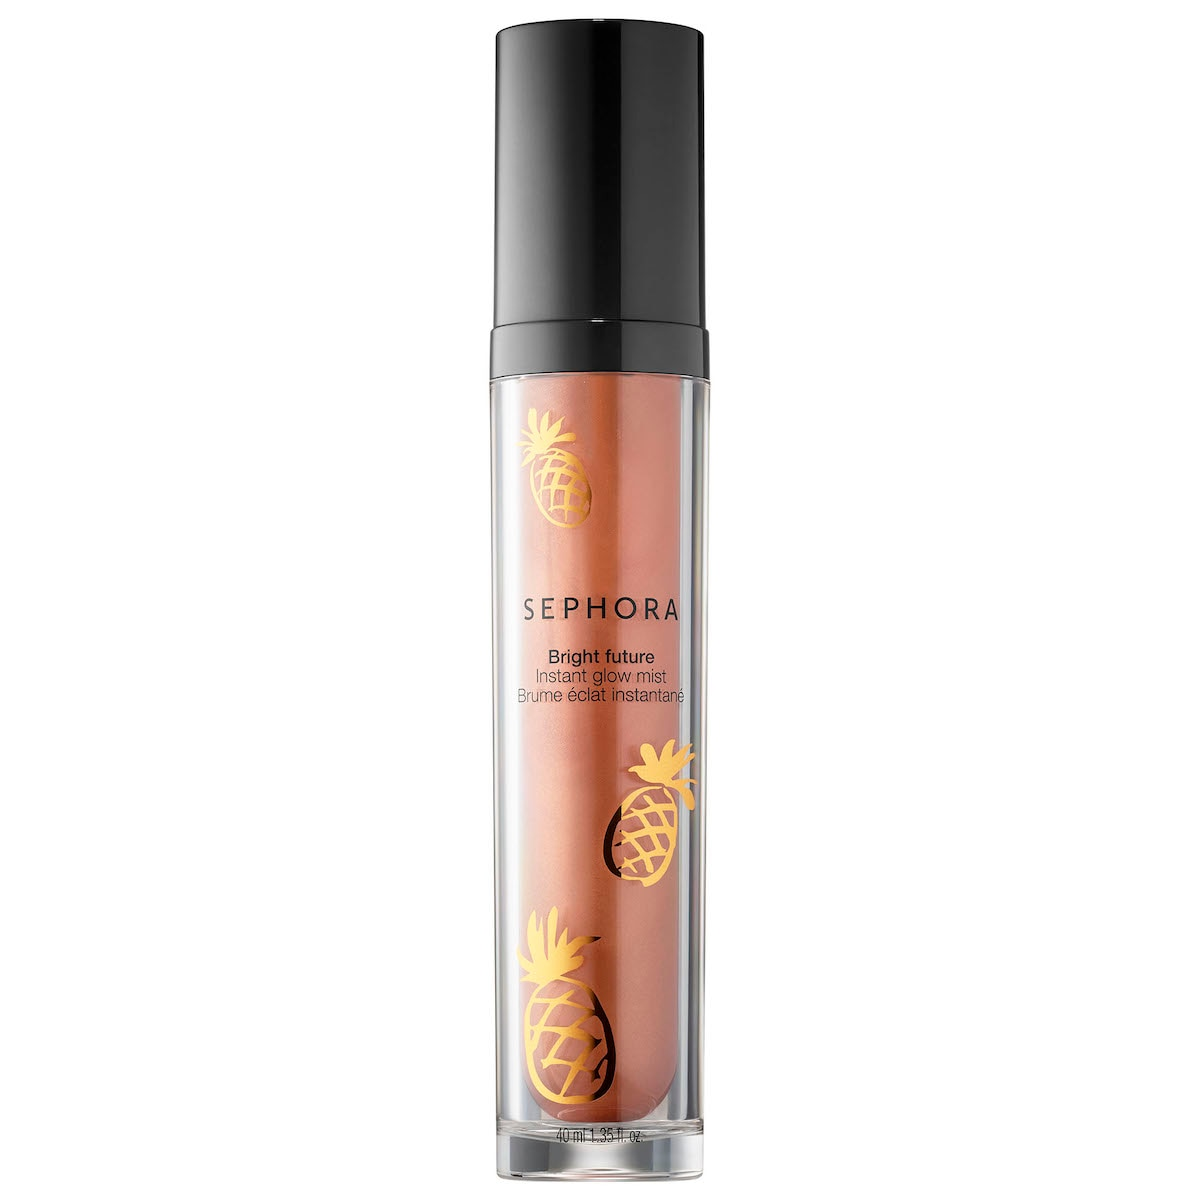 Bright Future Instant Glow Face Mist